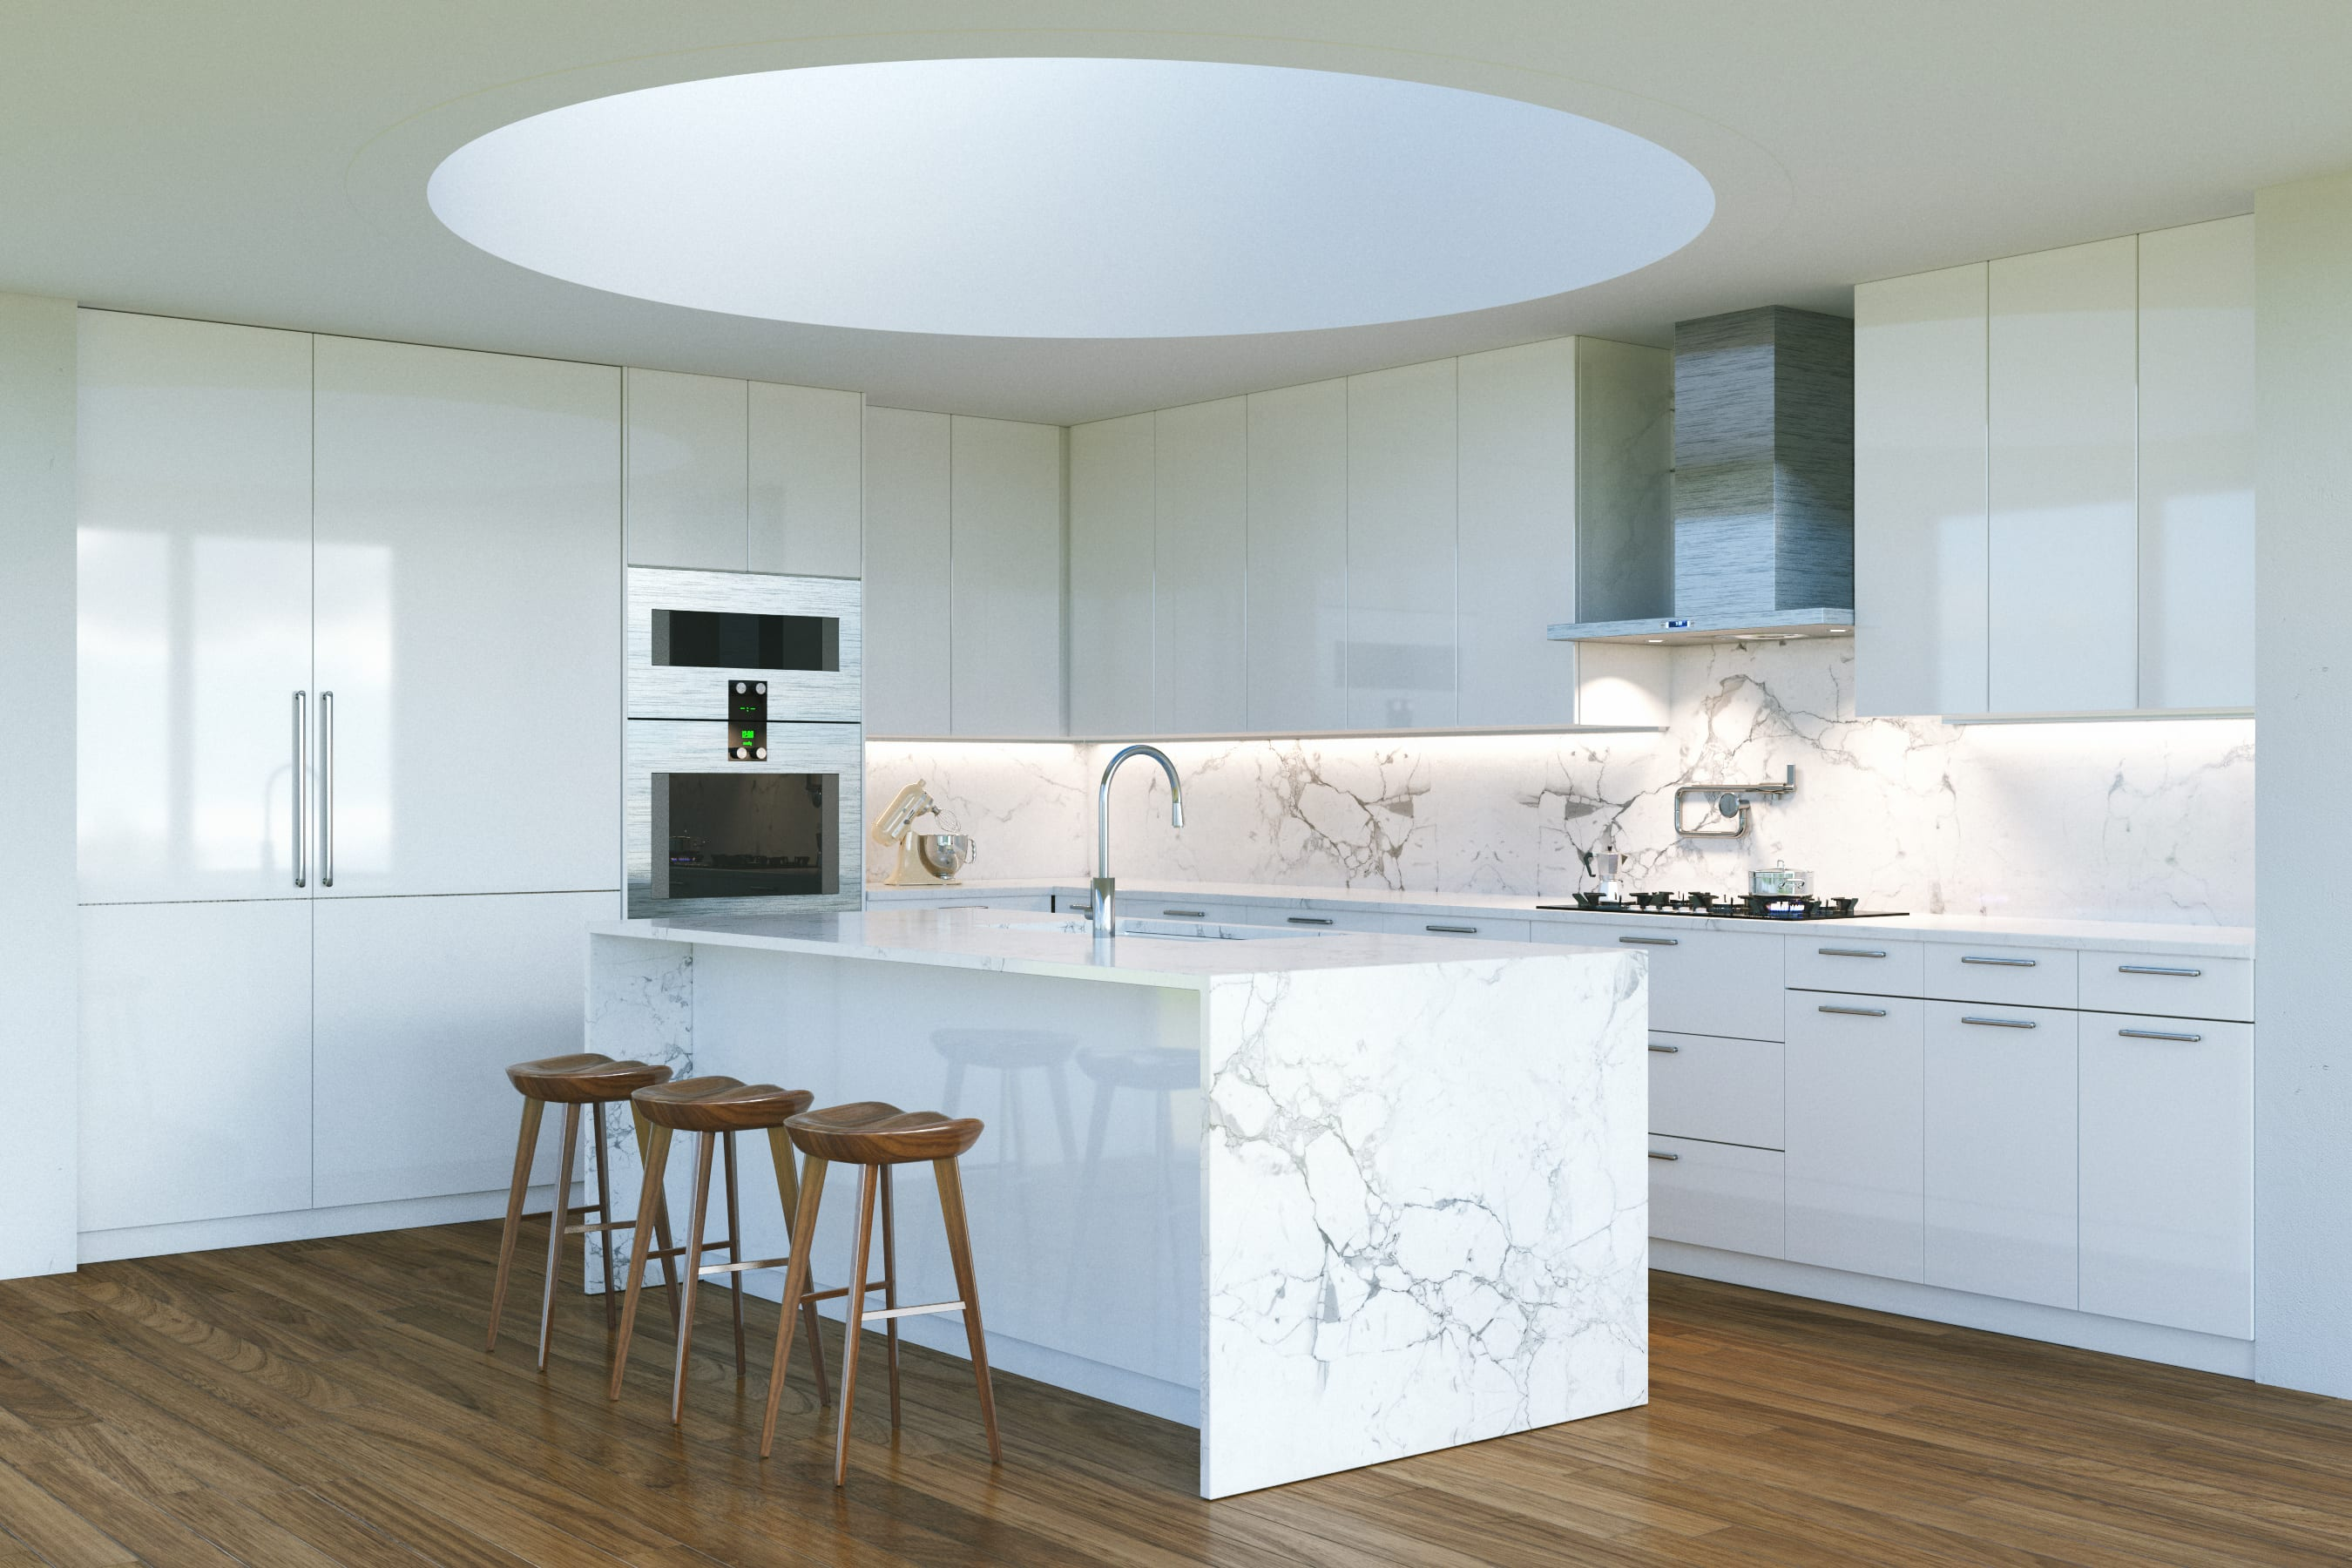 New Contemporary White Kitchen Interior with round second light window